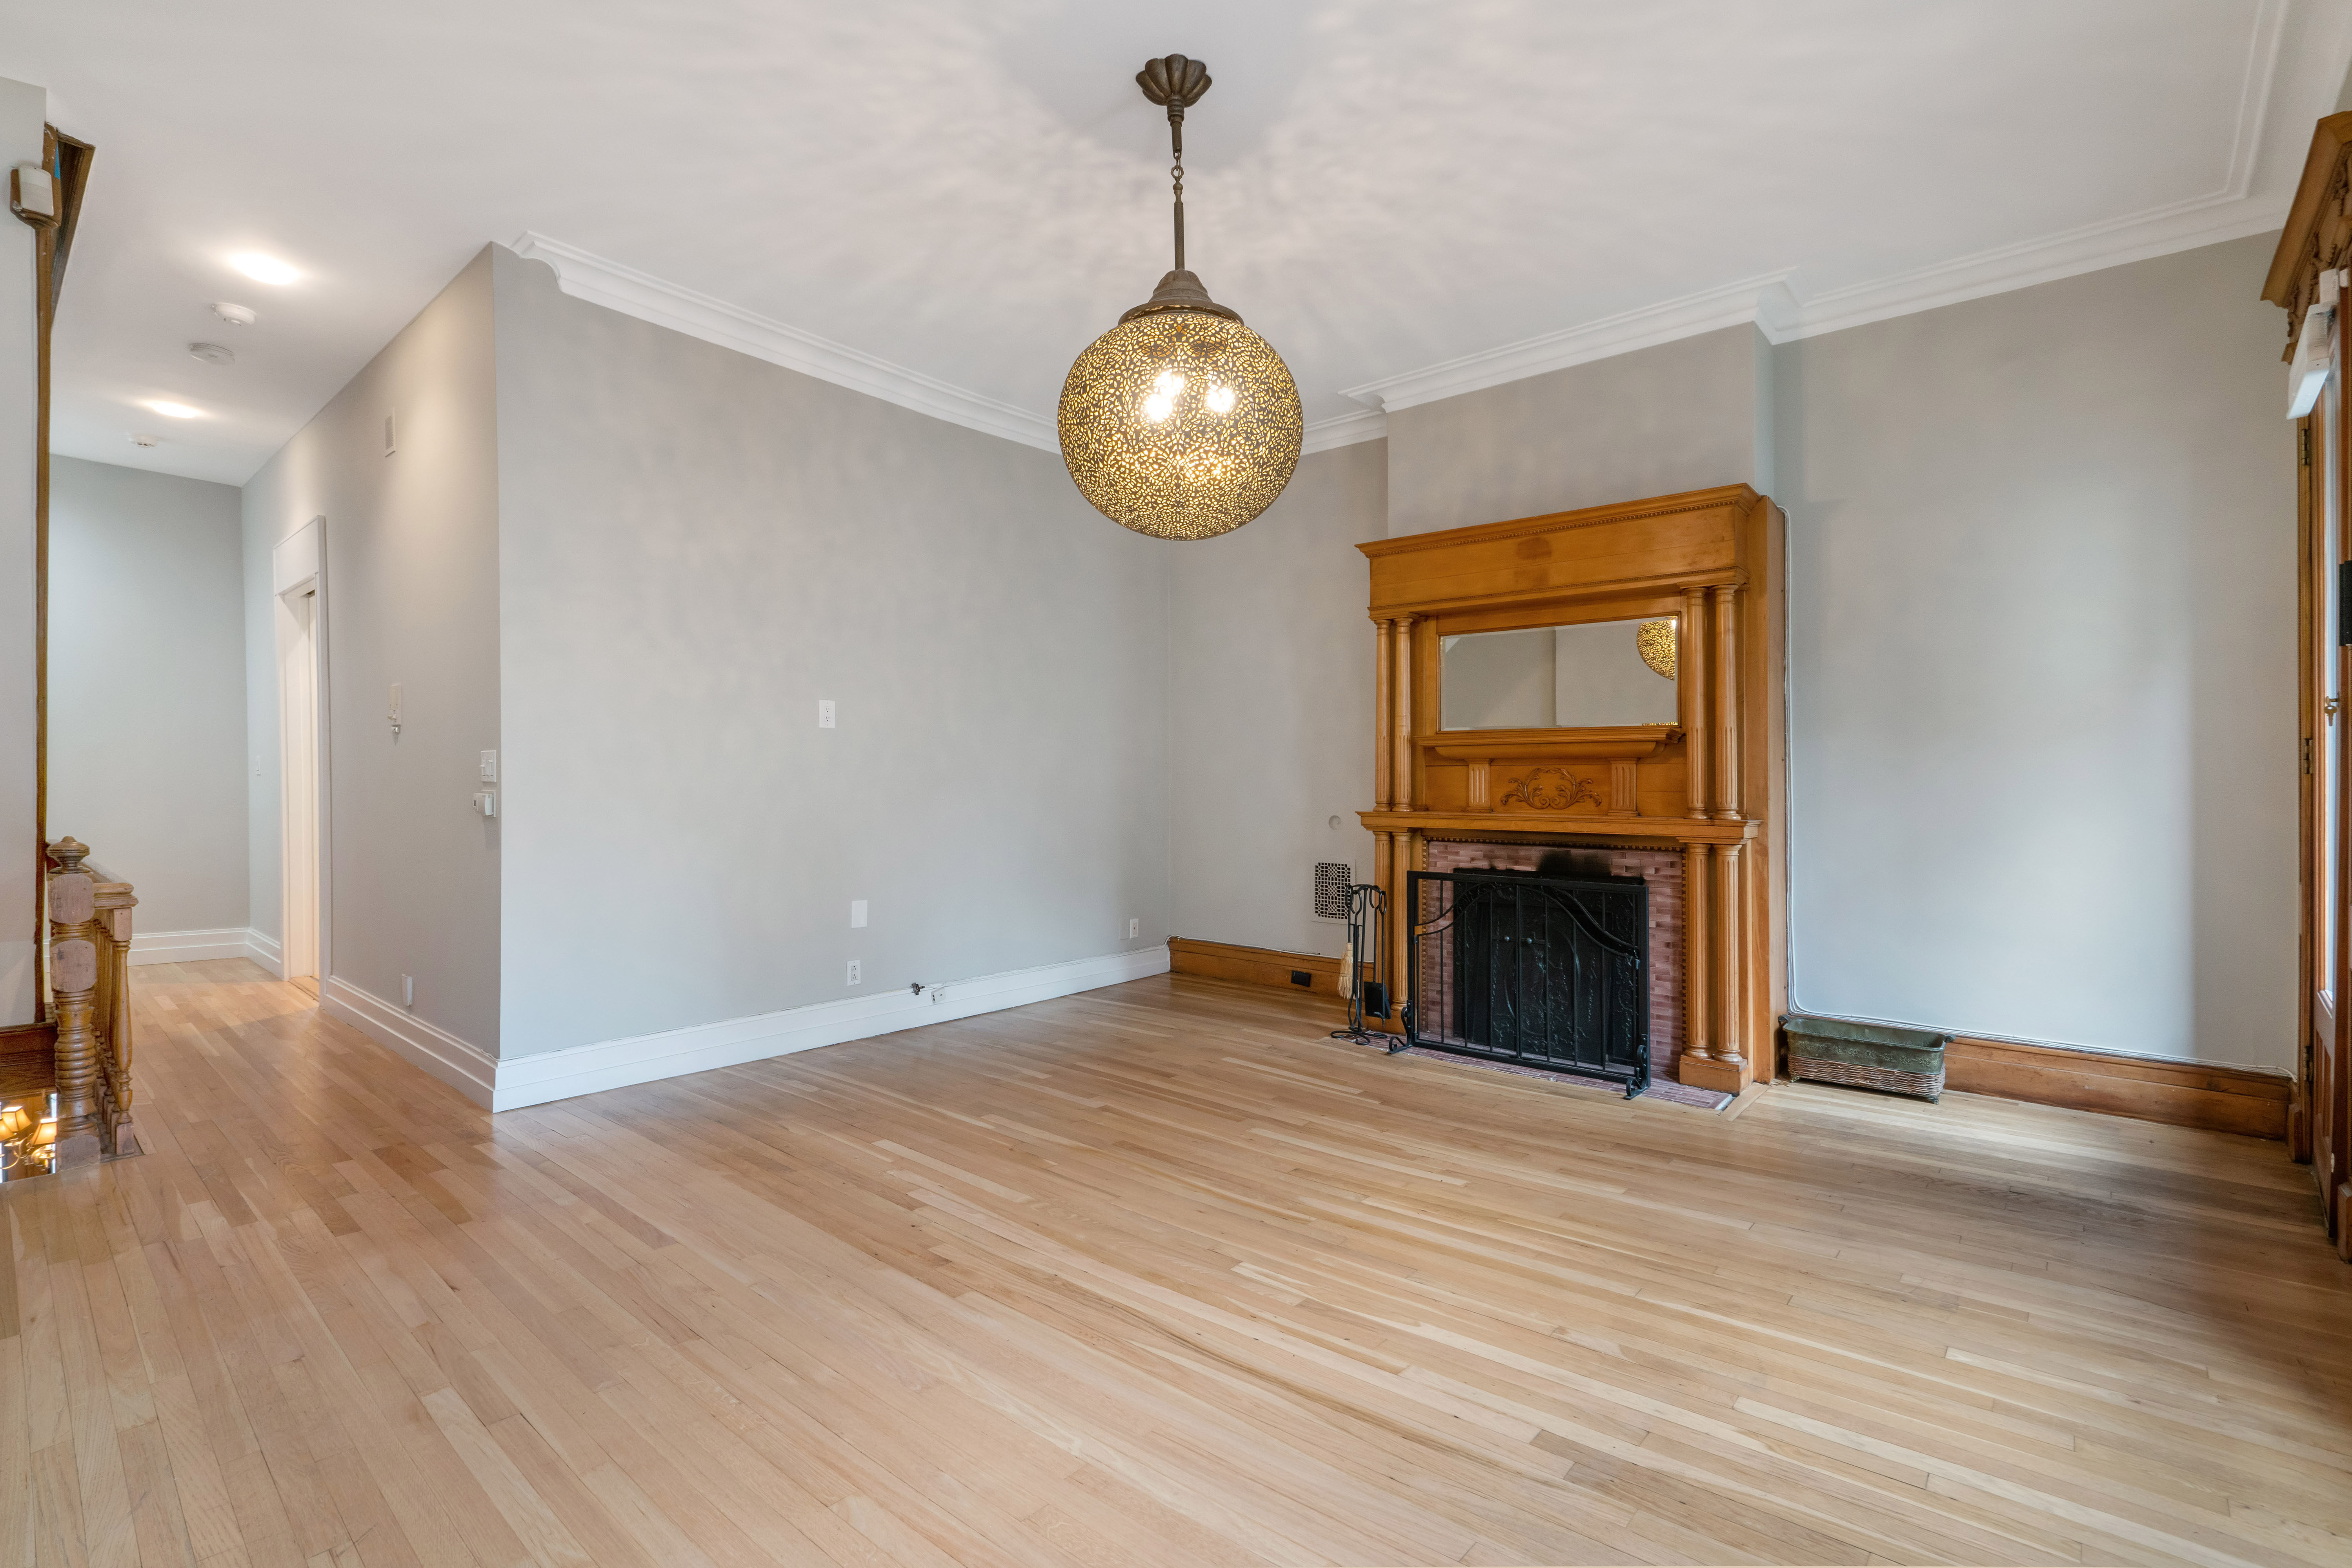 594 2nd St Photo 16 - BROWNSTONER-LISTING-47512a55ccfbbeb19b0a8fb315f62163